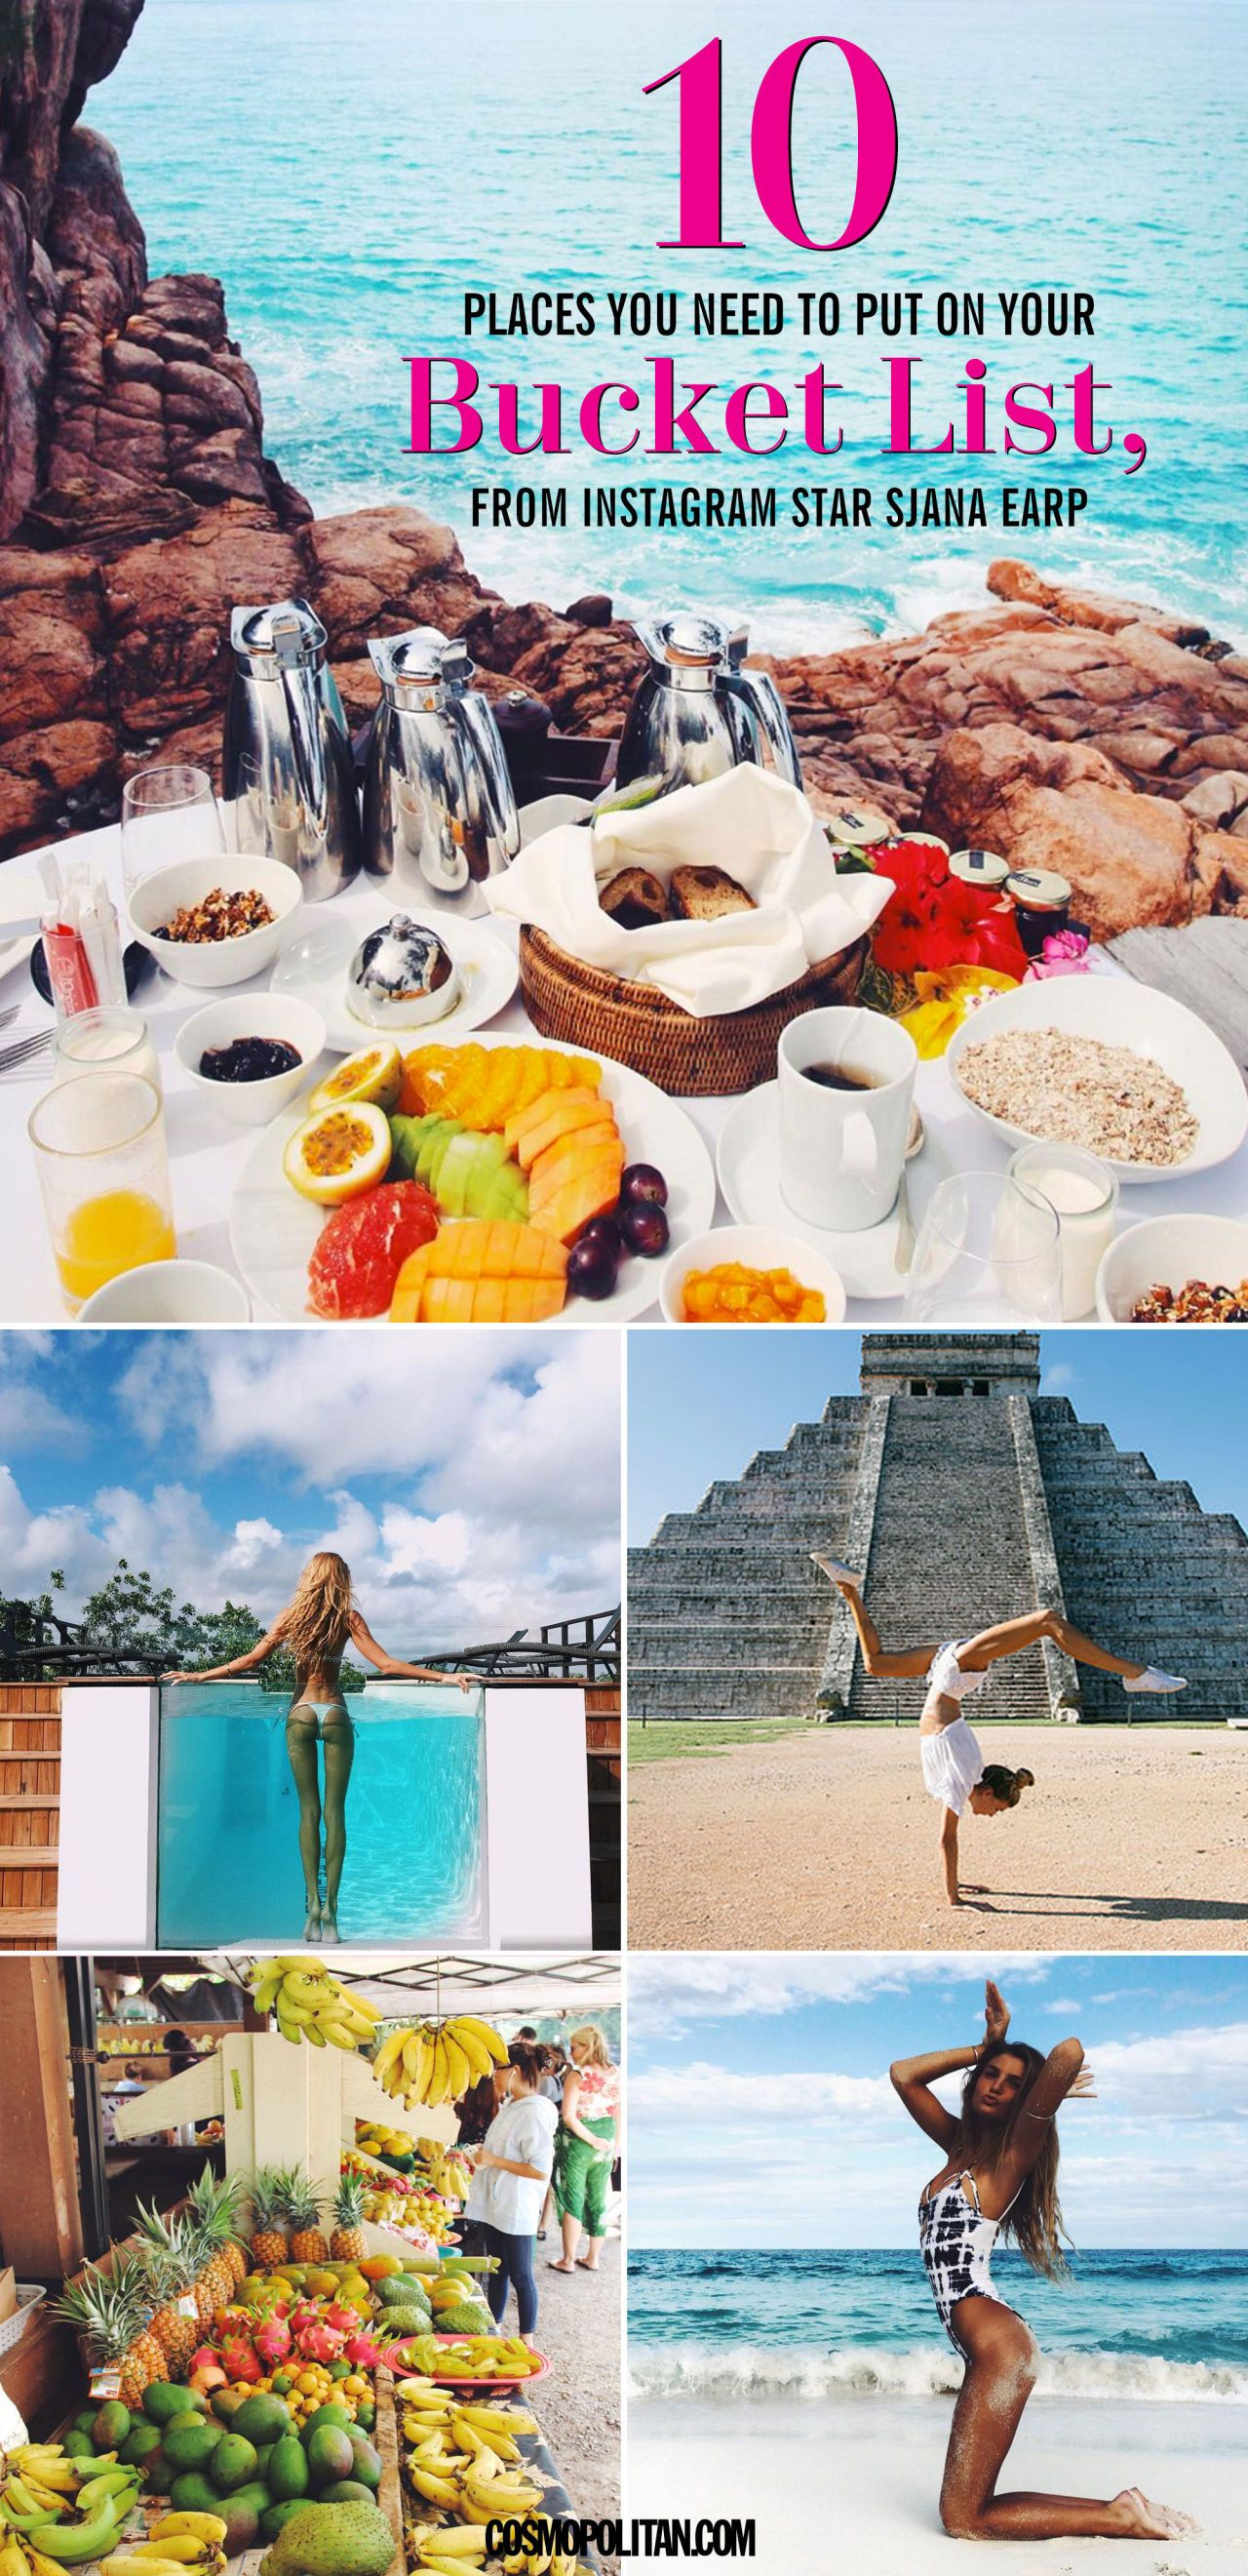 10 Places You Need To Put On Your Bucket List From Instagram Star